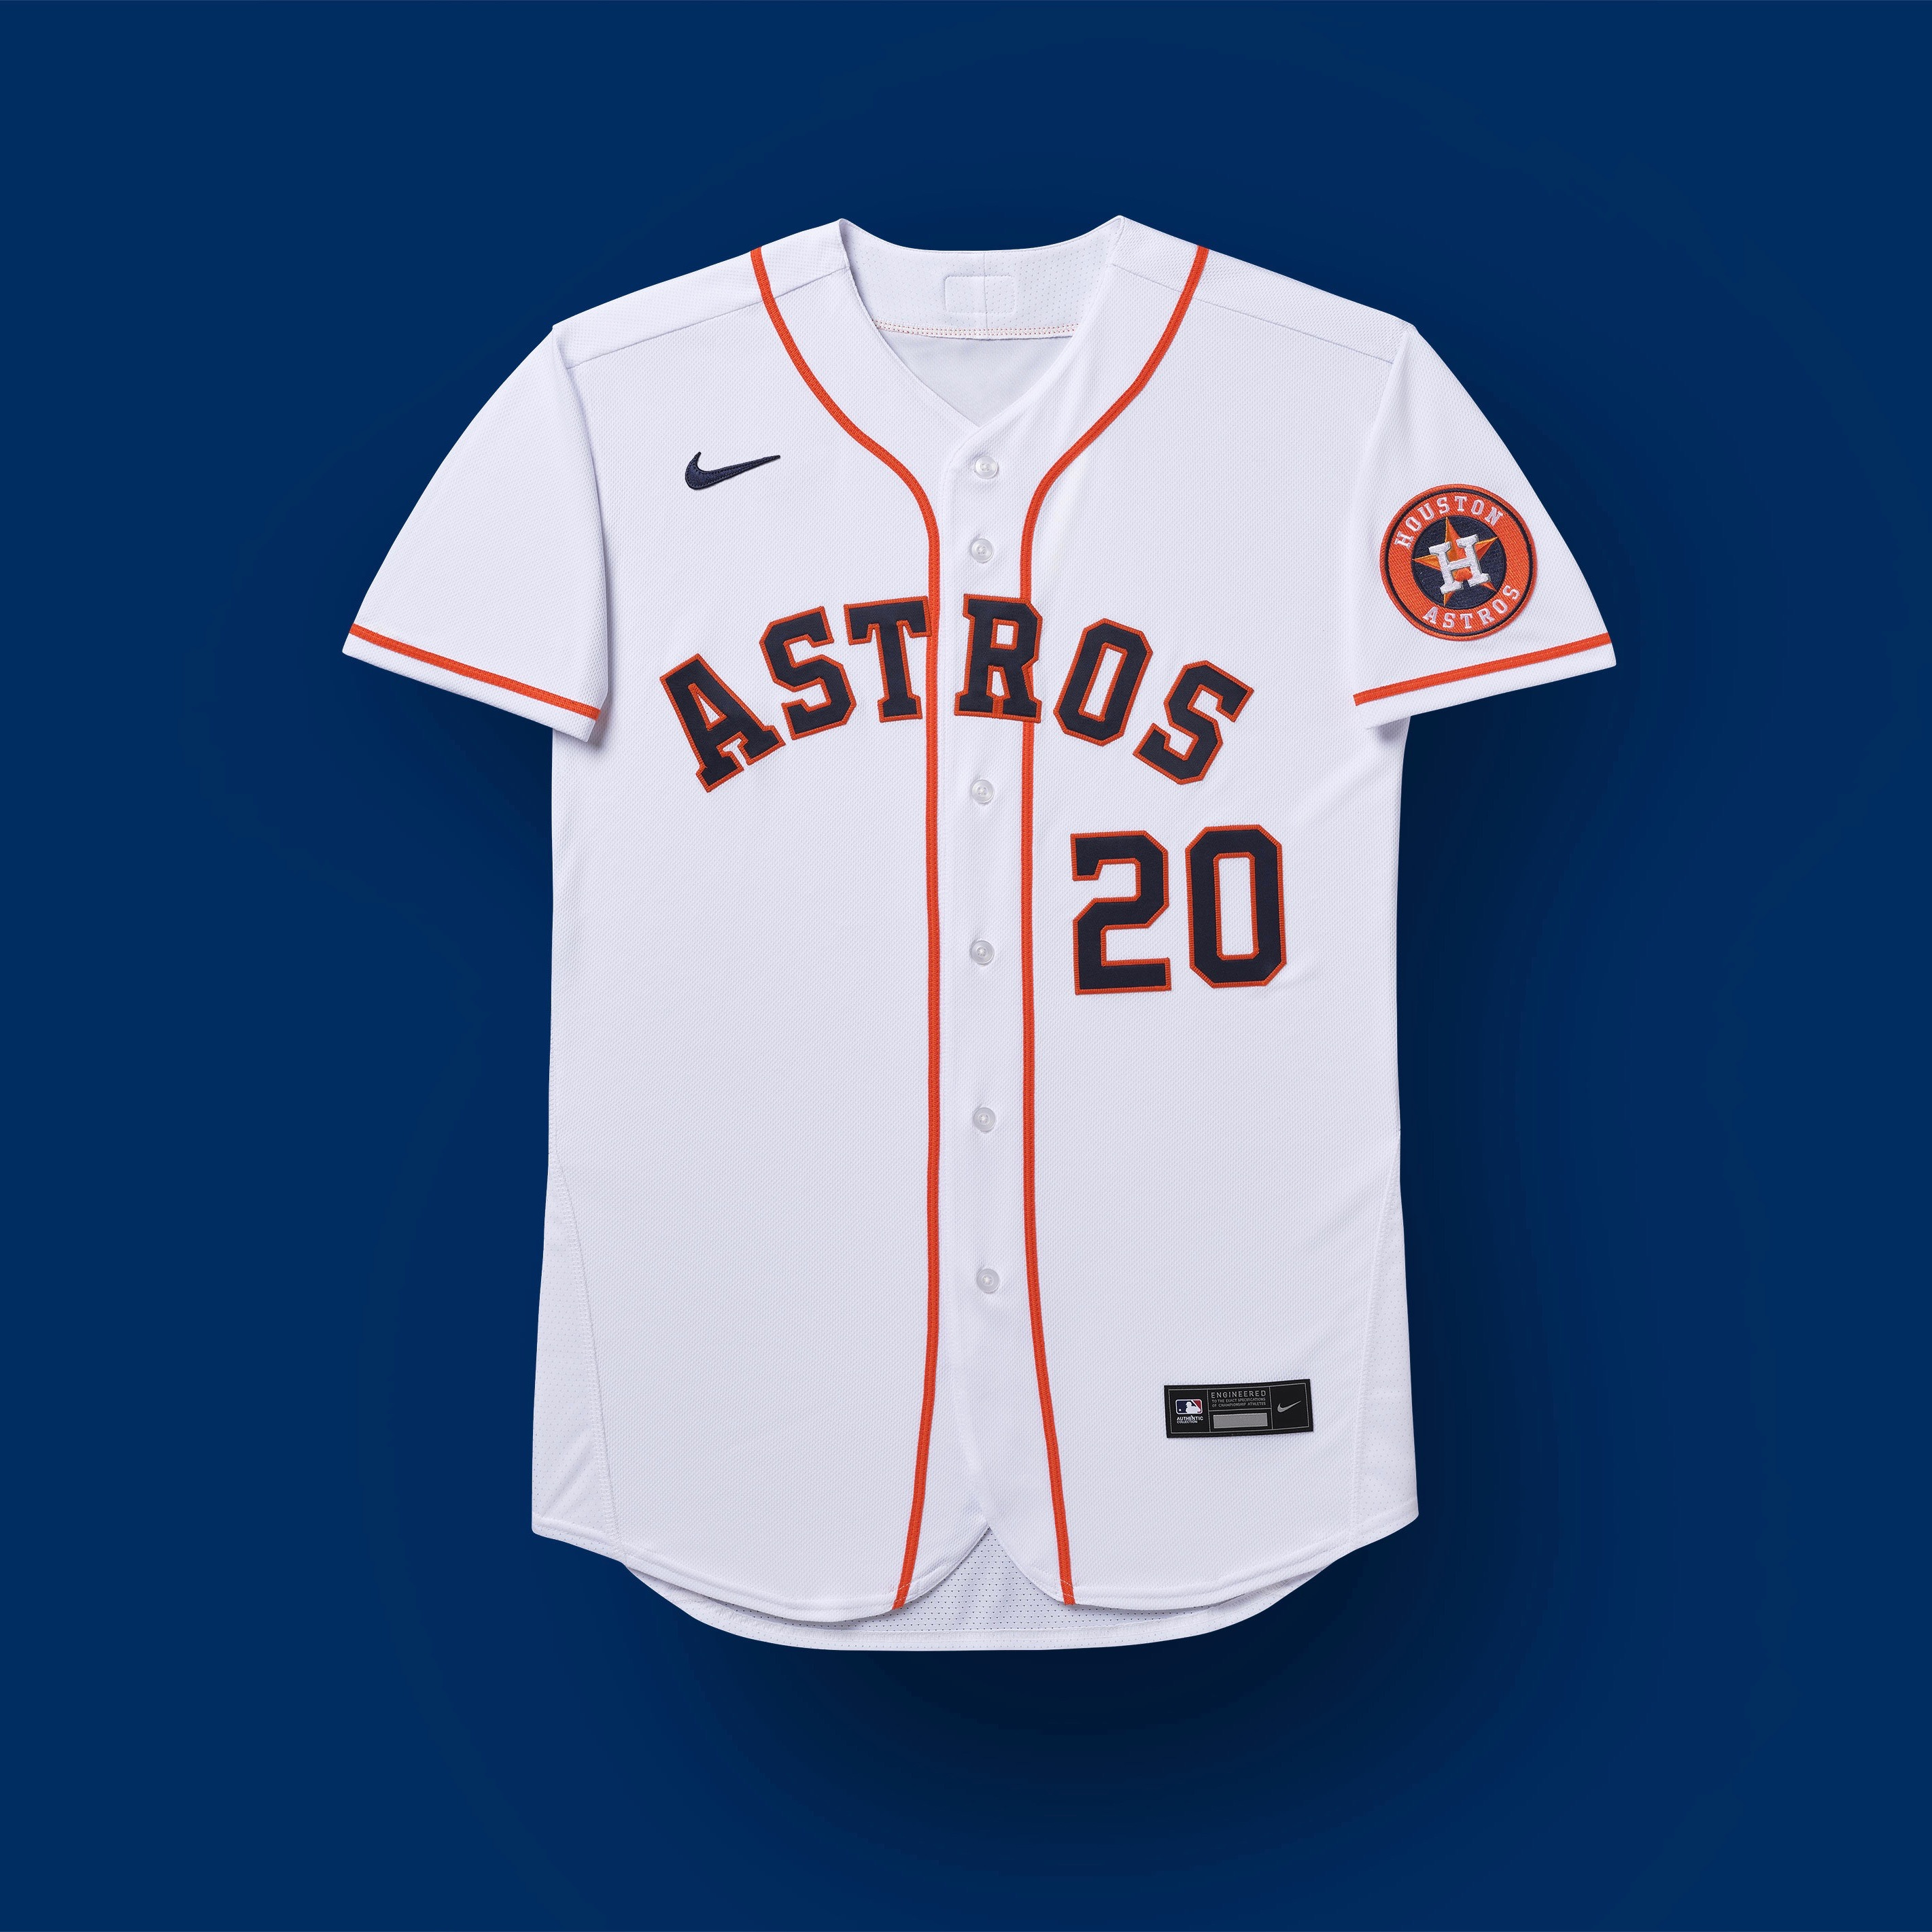 houston astros 2020 uniforms